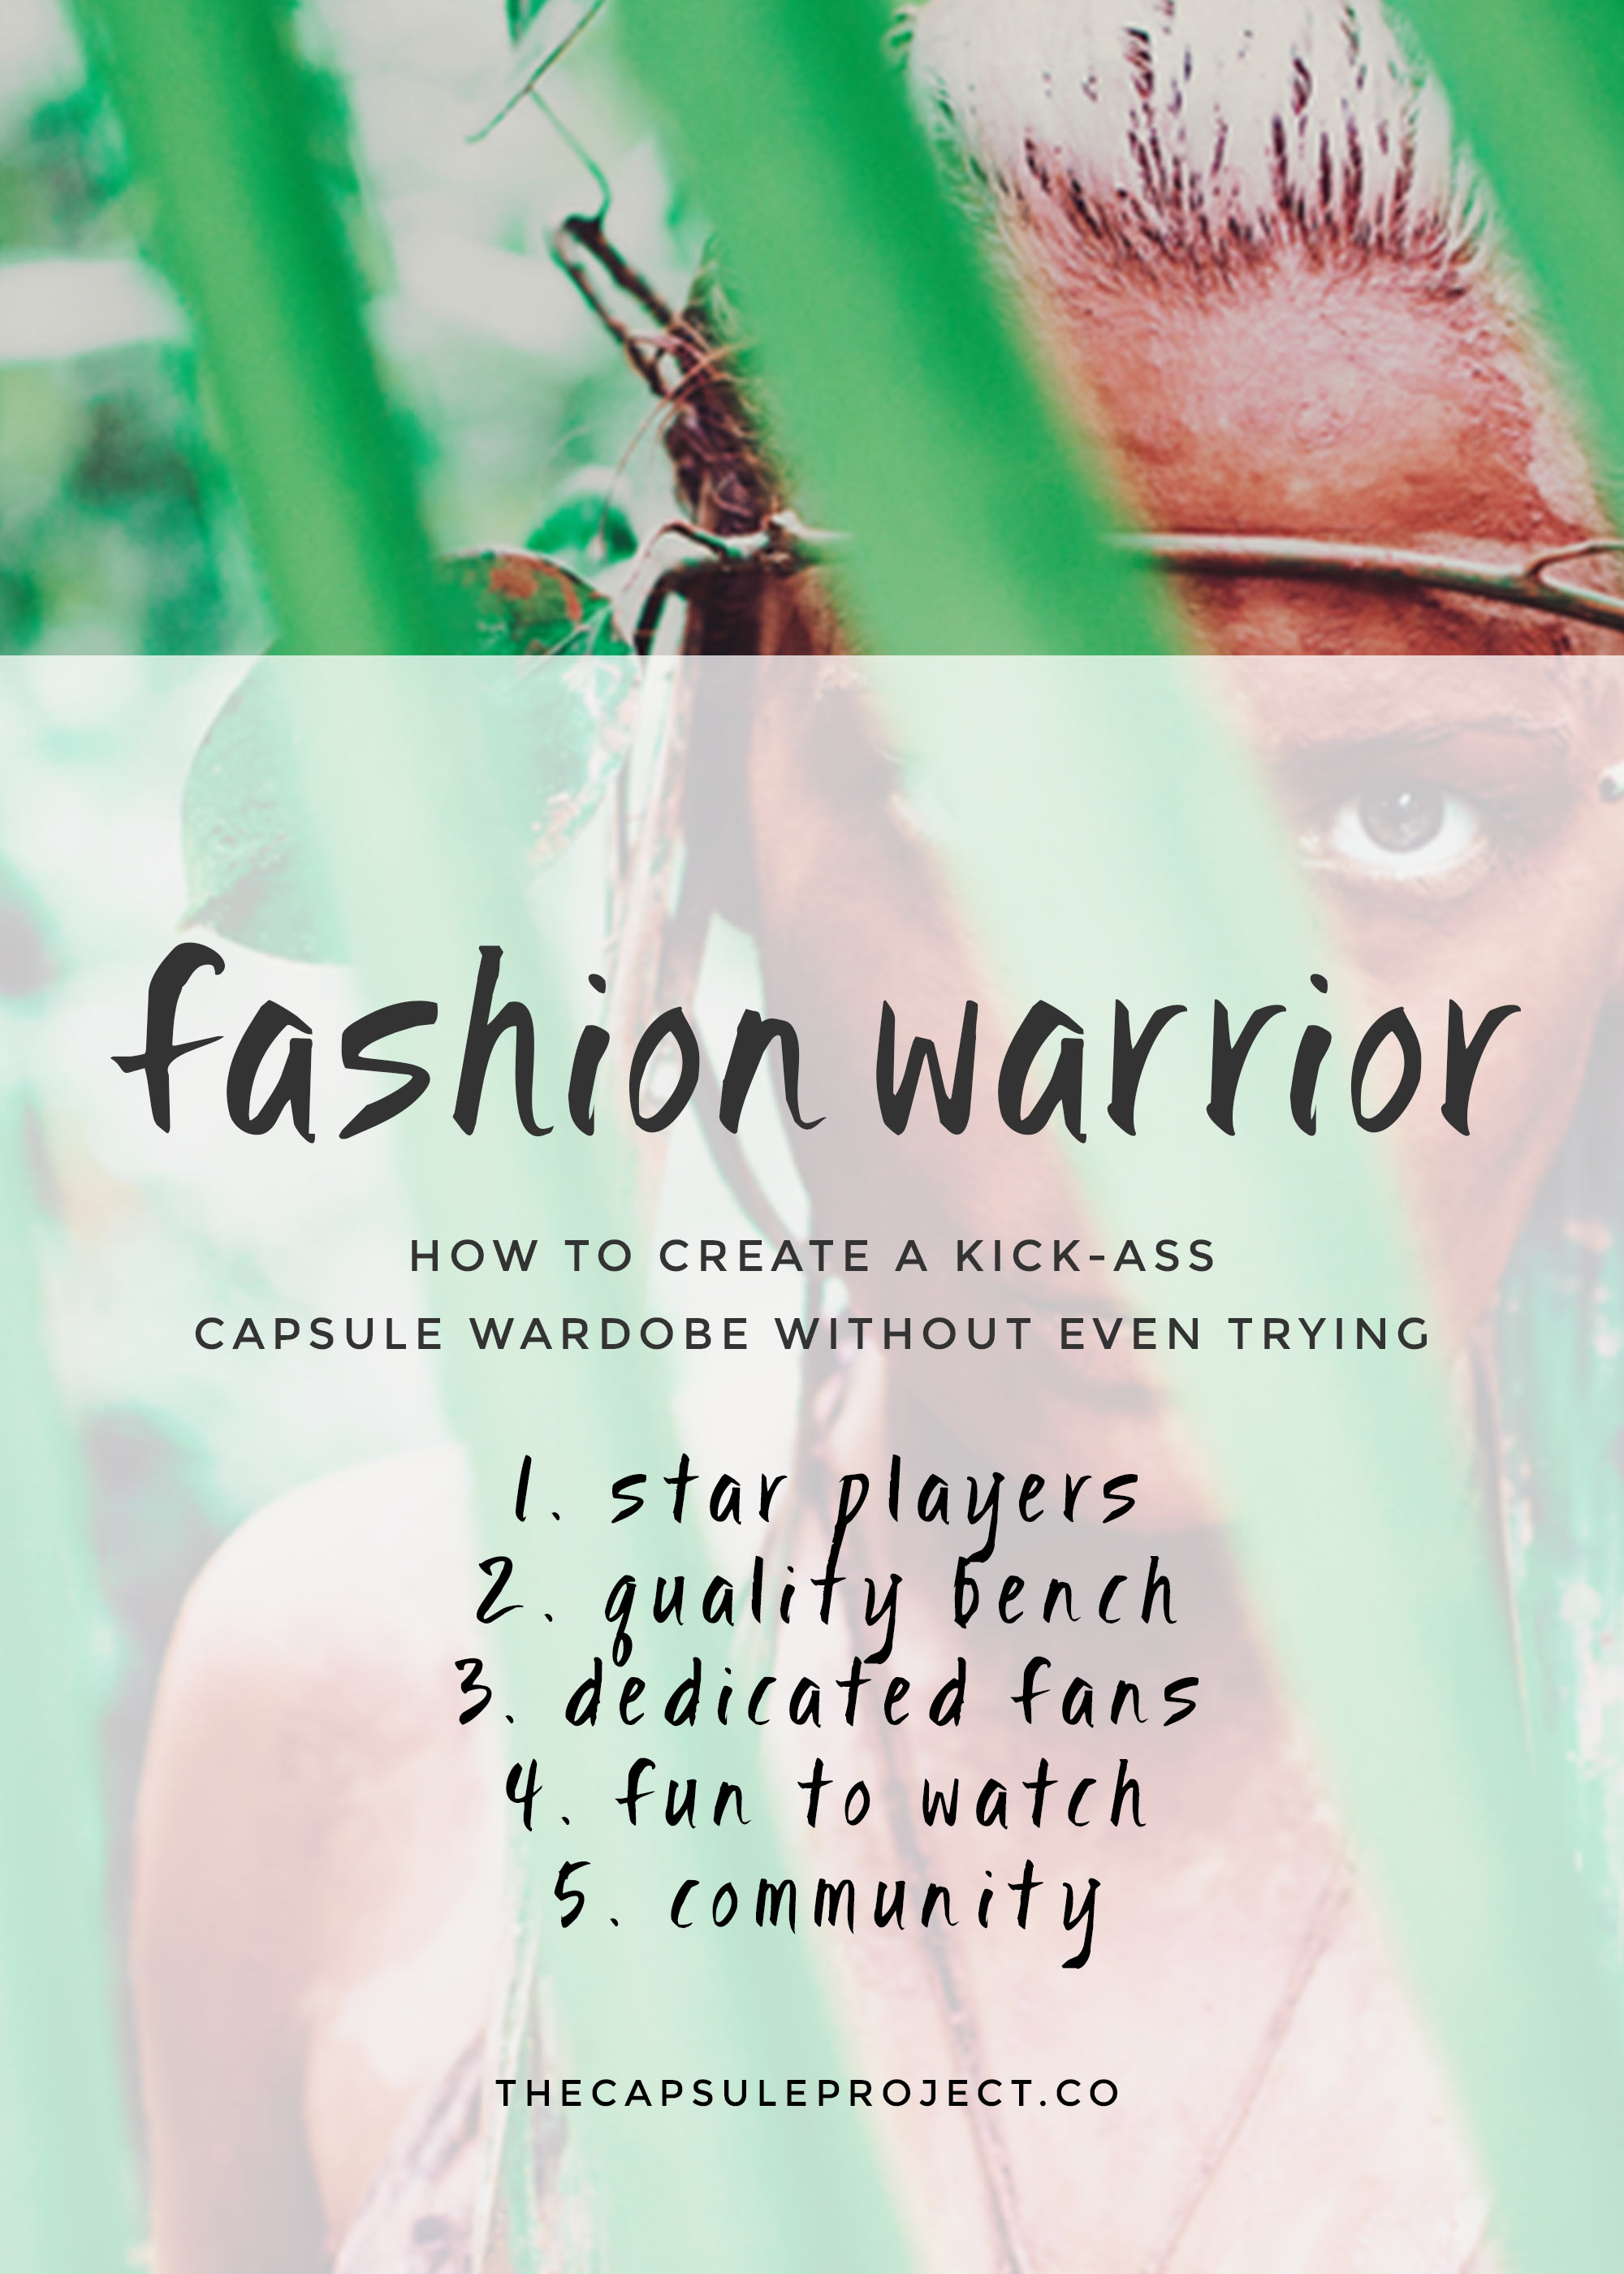 The simplest way to create a capsule wardrobe.